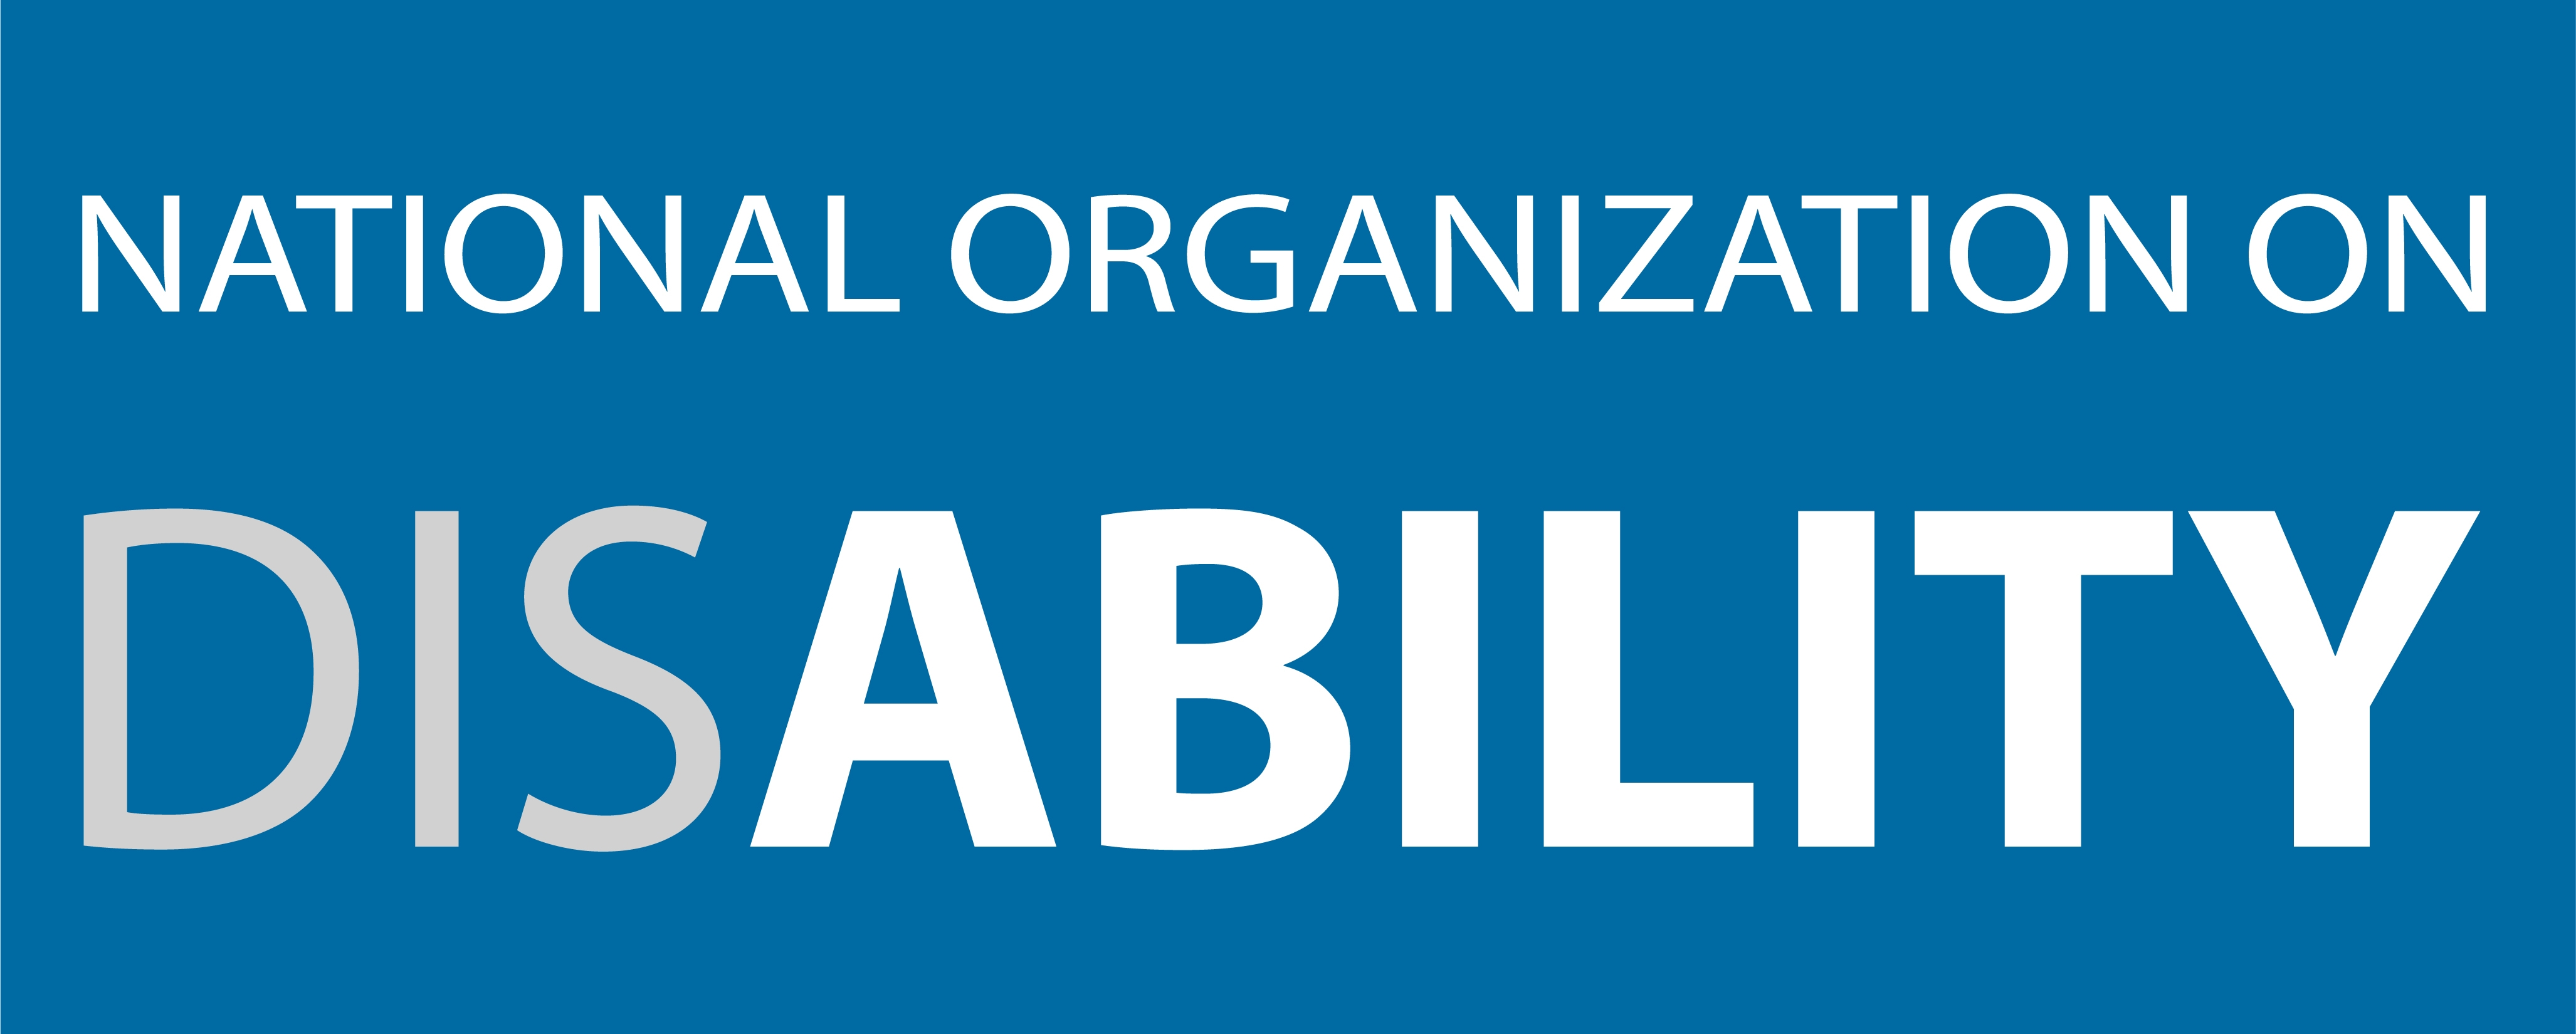 National Organization on Disability logo